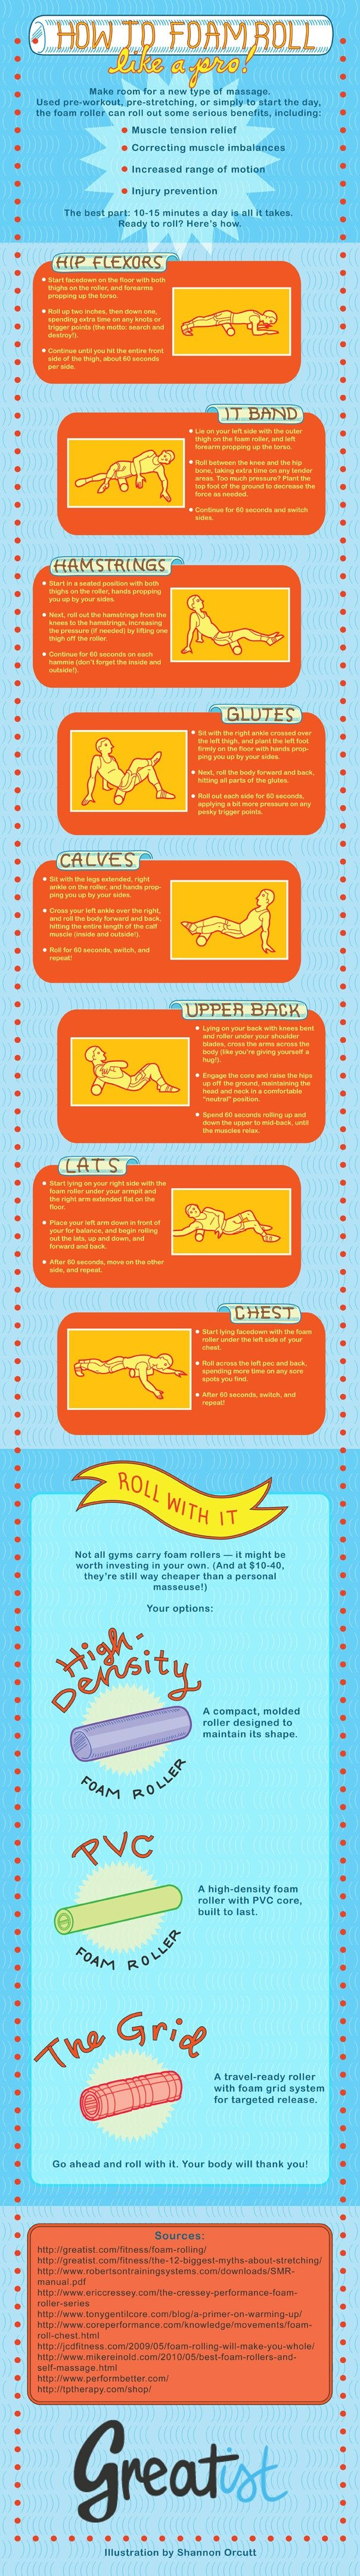 How to Foam Roll Like a Pro by greatist #Infographic #Foam_Roller